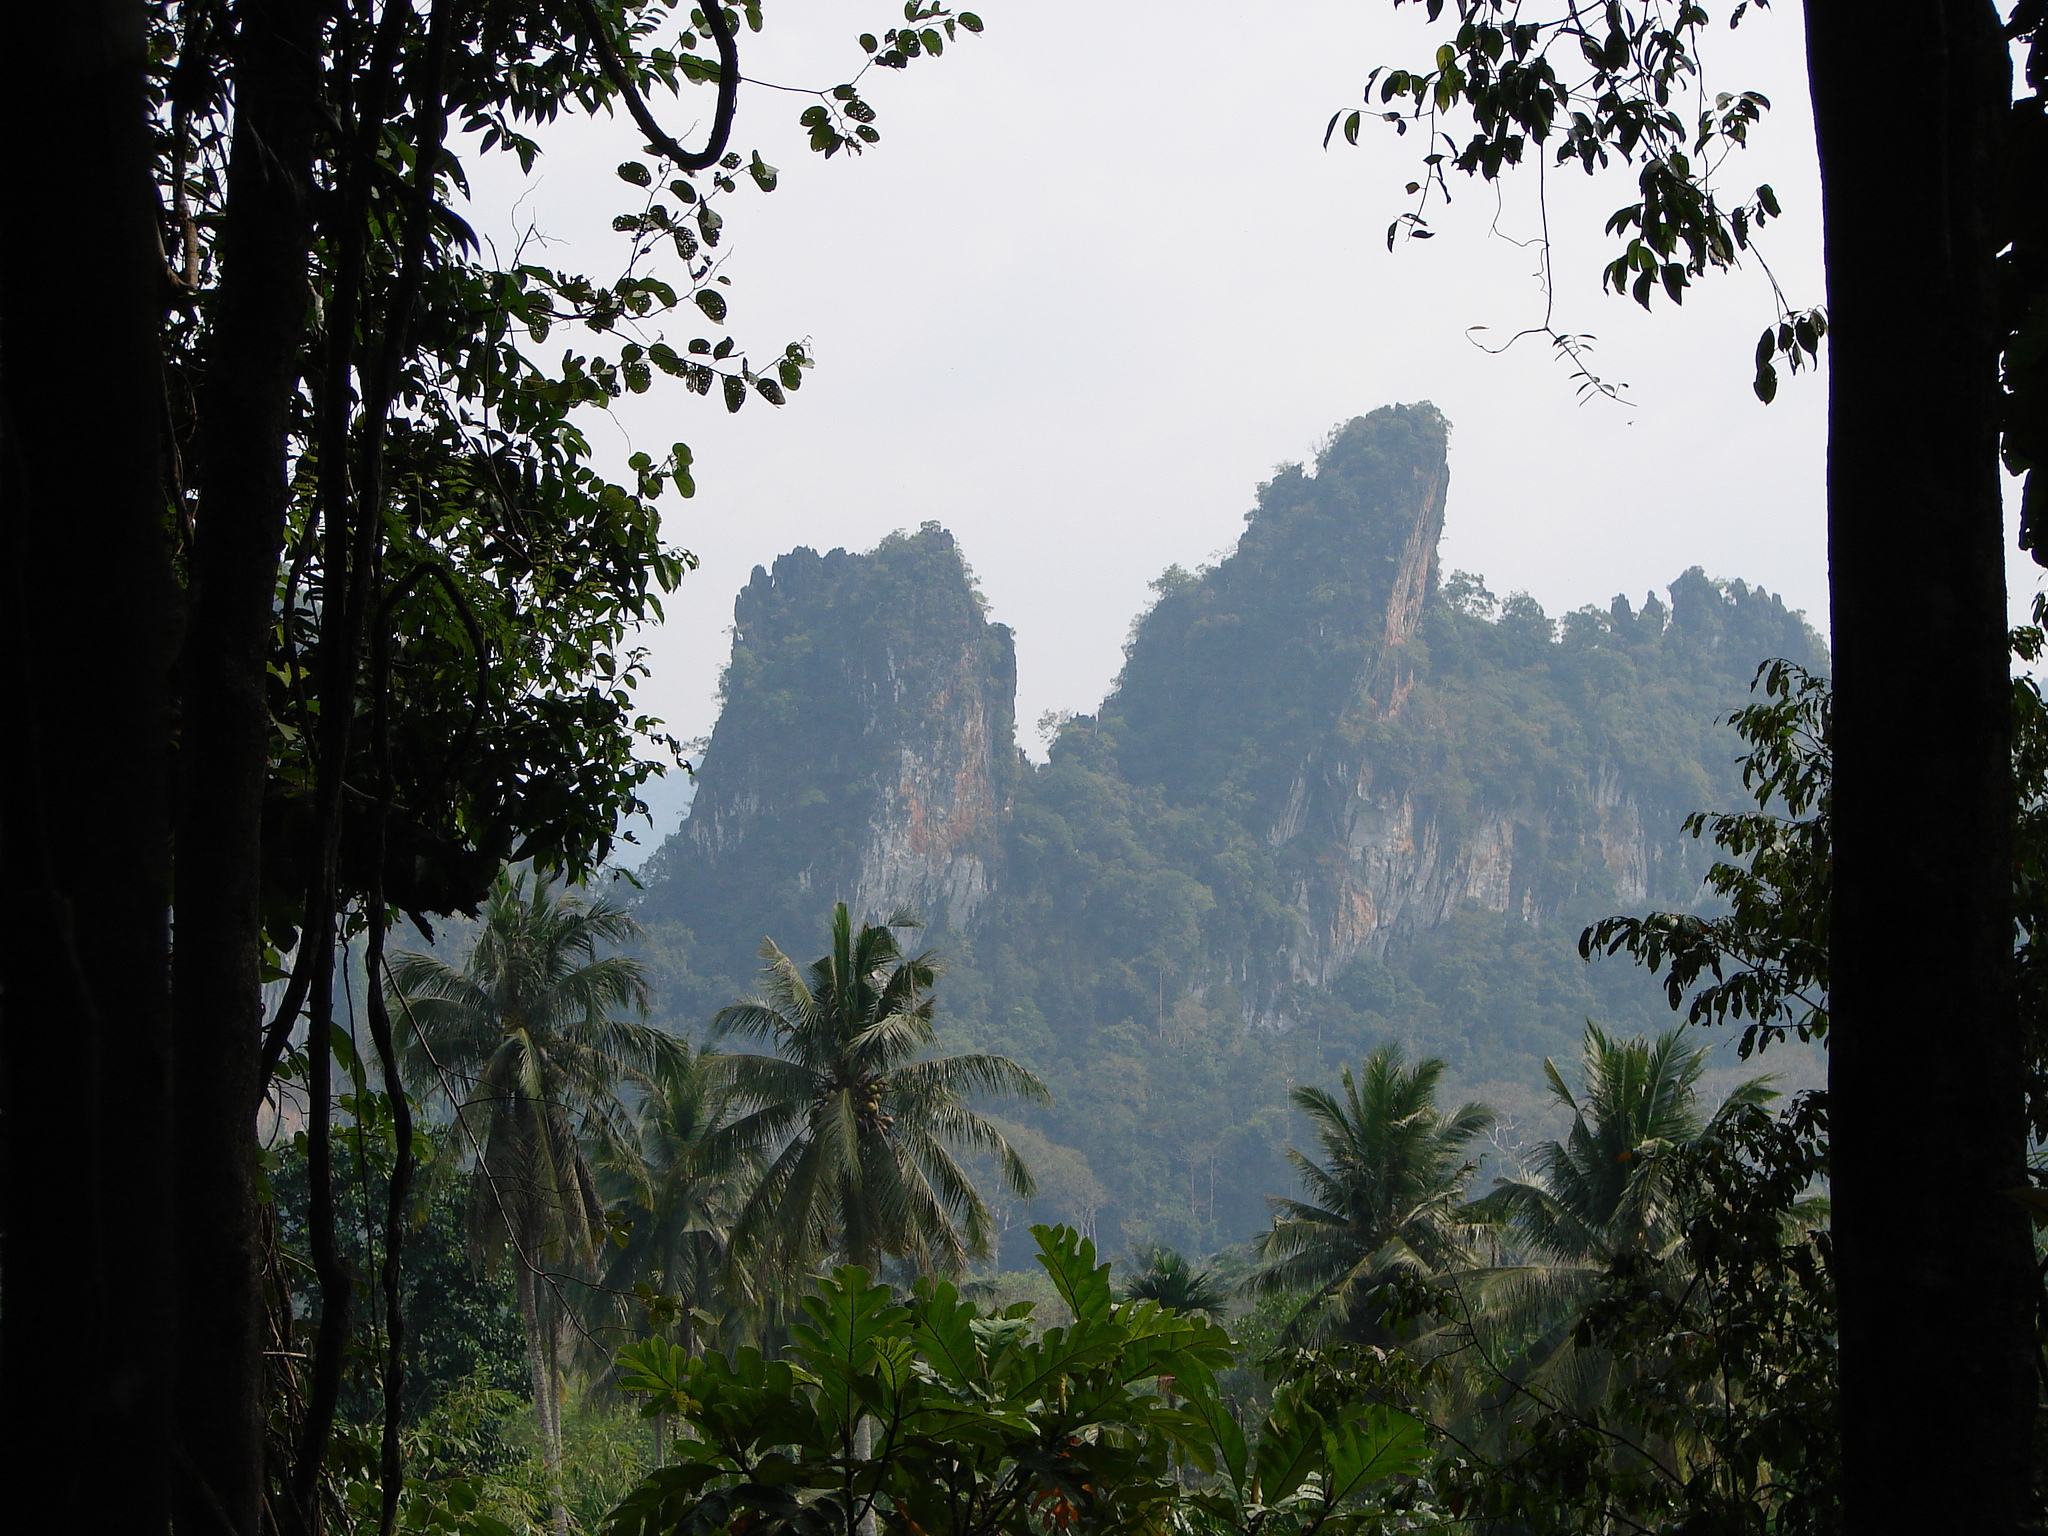 Review of Our Jungle House eco lodge, Khao Sok, Thailand ...